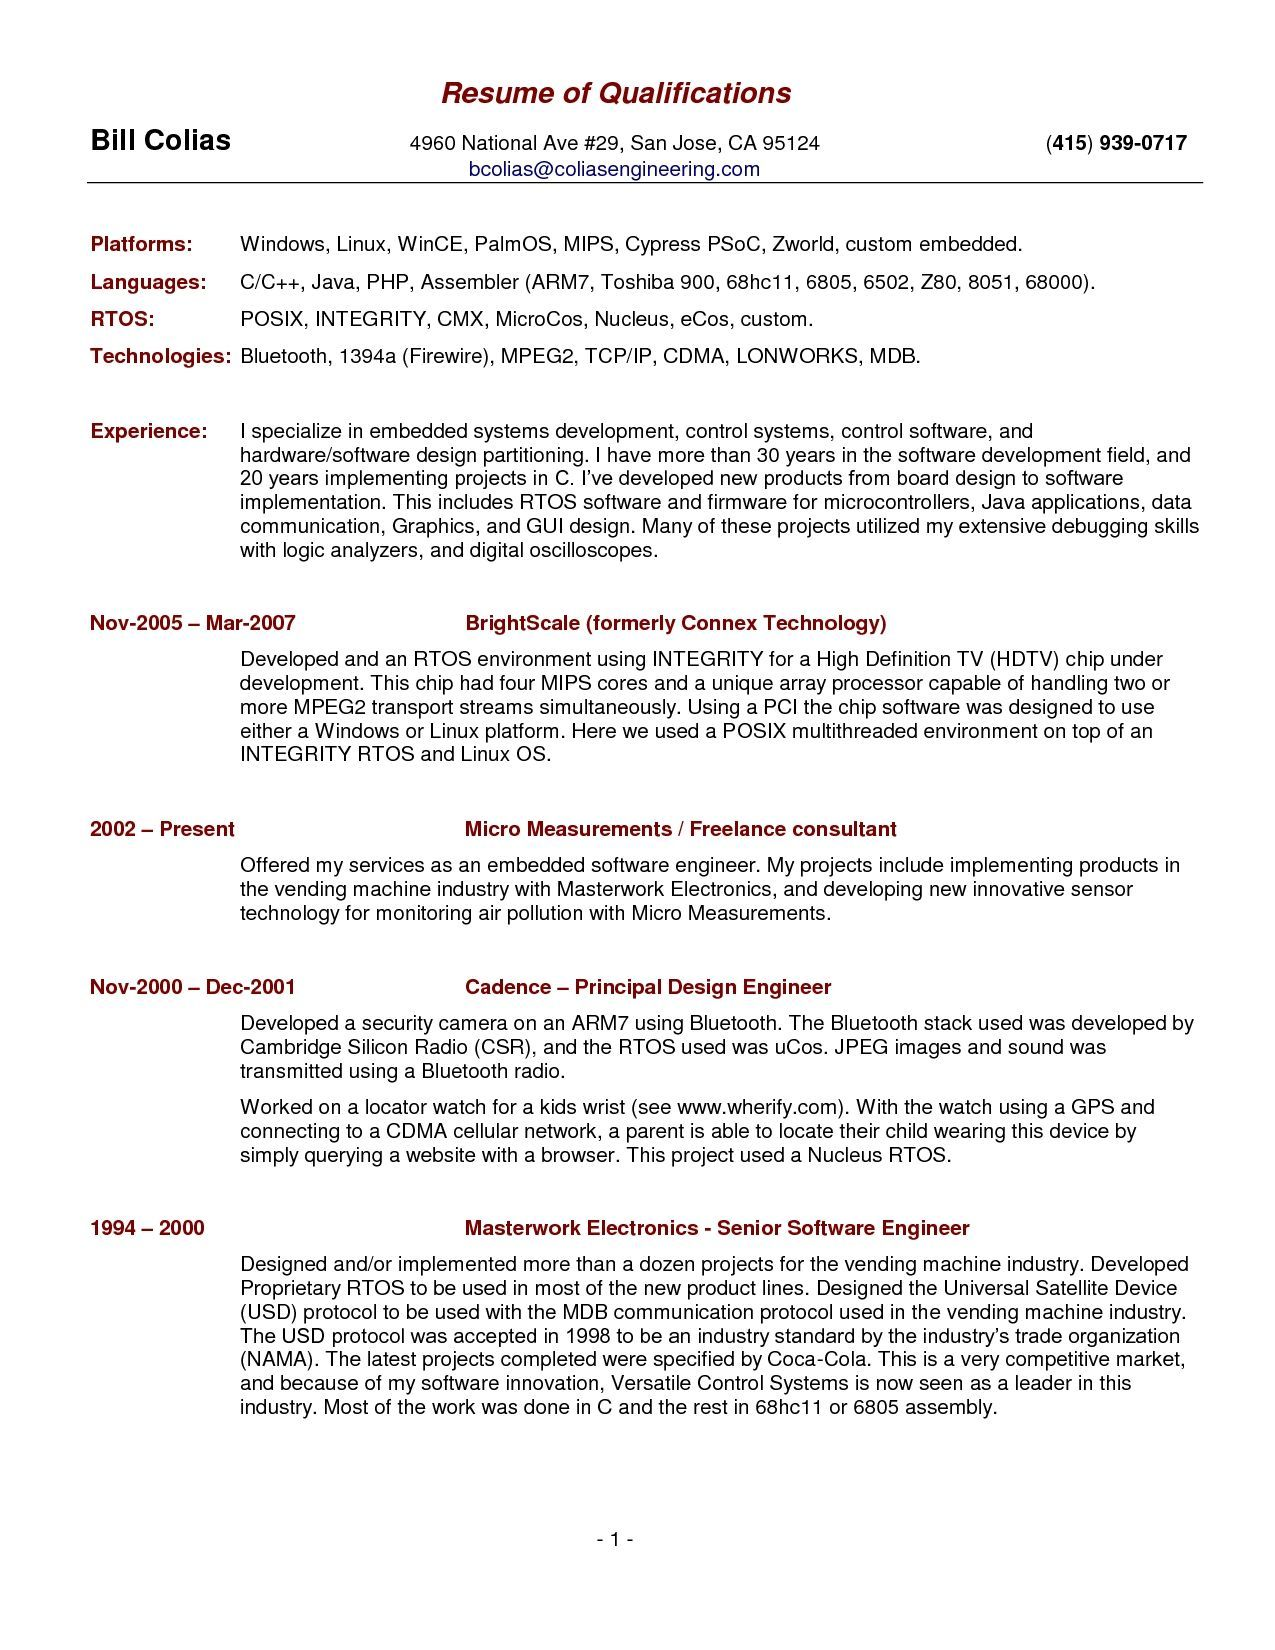 Qualifications Resume Examples Resume Skills Basic Resume